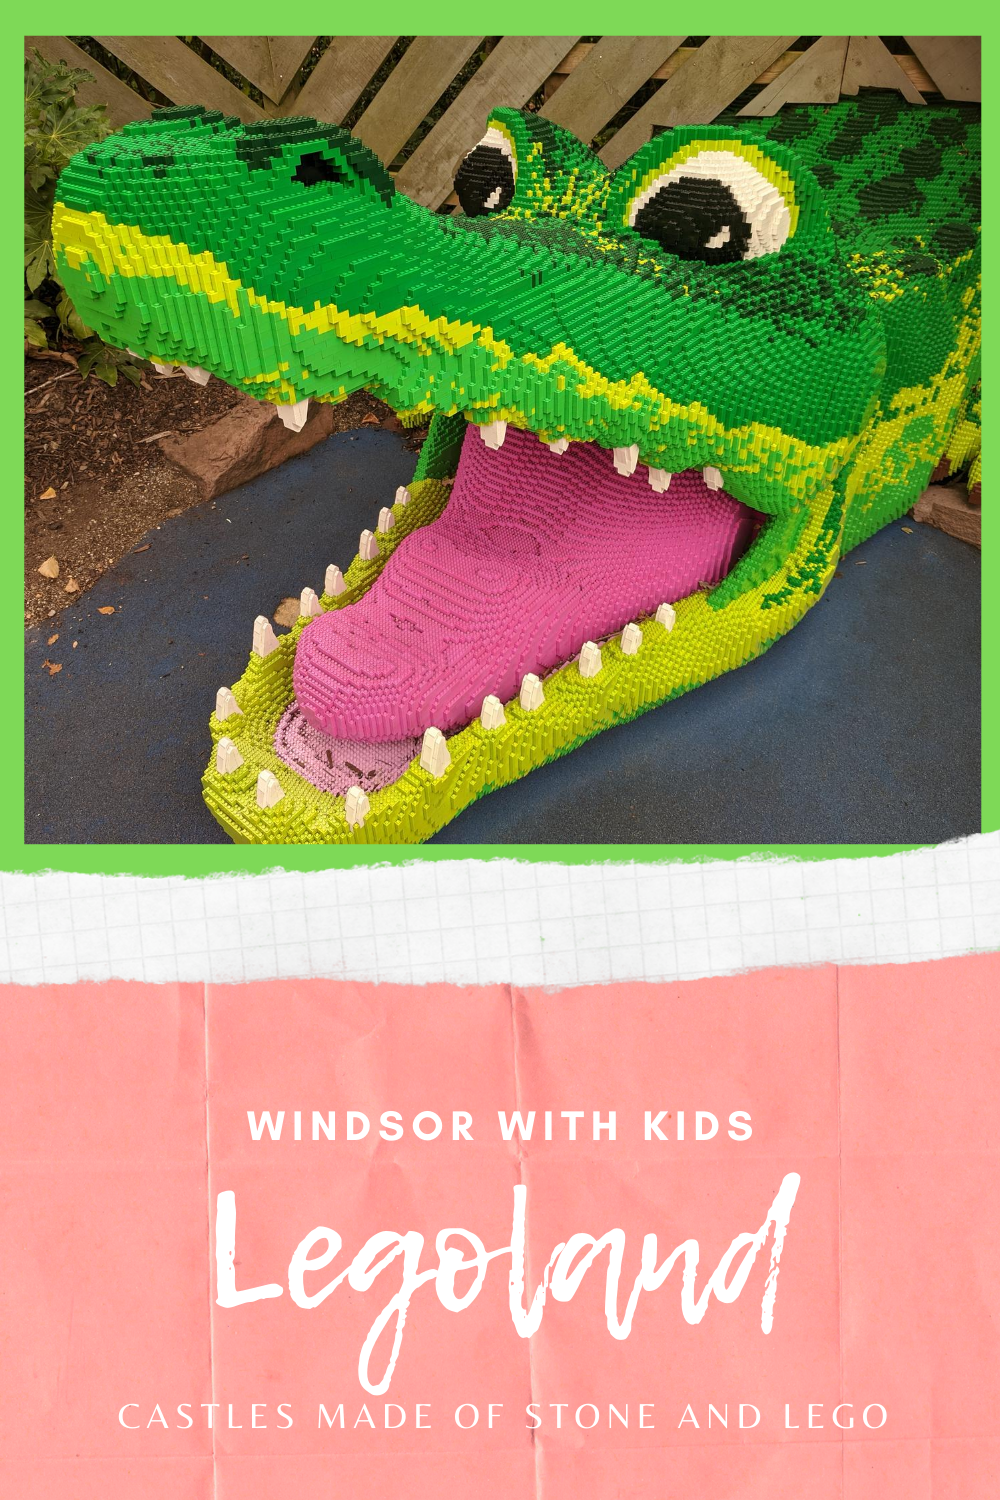 Legoland and Windsor for kids